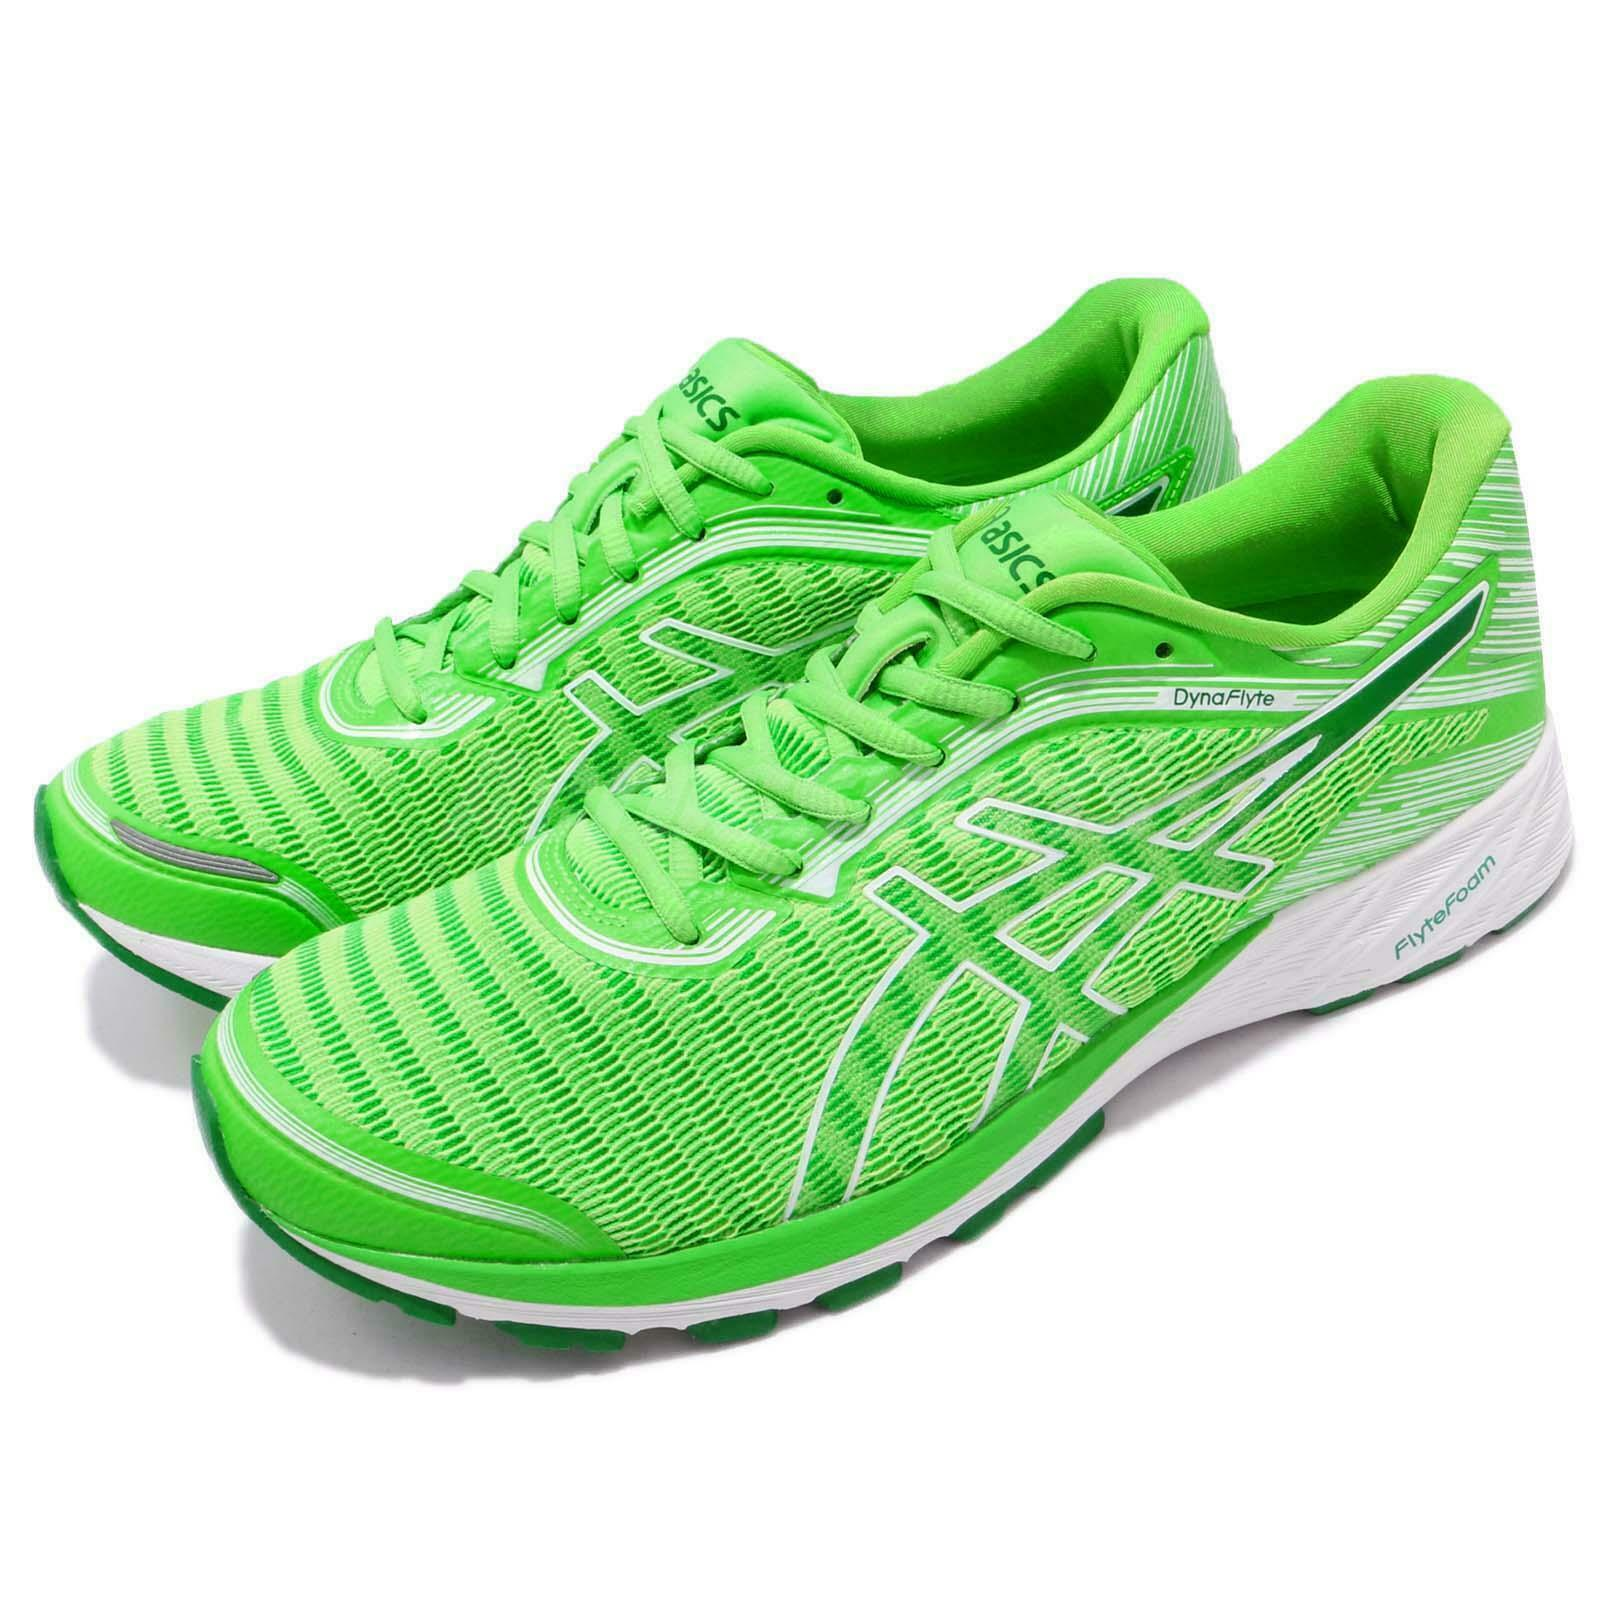 Asics DynaFlyte Flytefoam Green White Men  Running shoes Road Runner T731N-8584  discounts and more